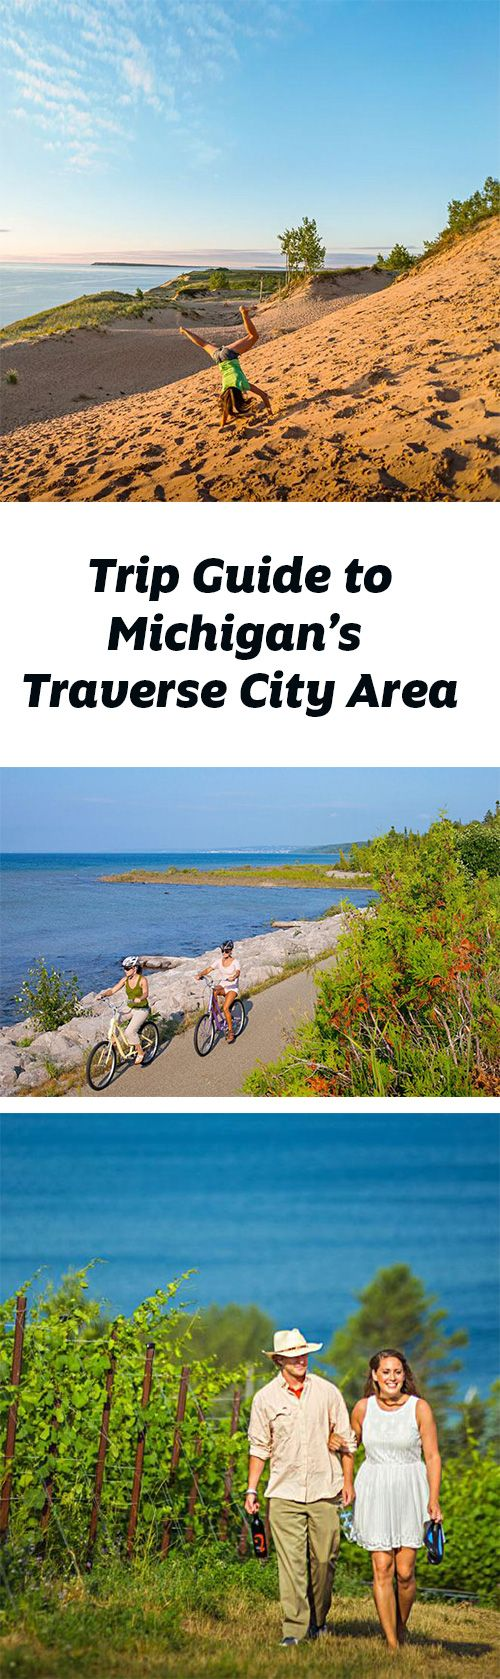 Adventures by the water highlight a visit to Michigan's Traverse City and the surrounding area. Trip guide: http://www.midwestliving.com/travel/michigan/traverse-city/traverse-city-area-trip-guide/